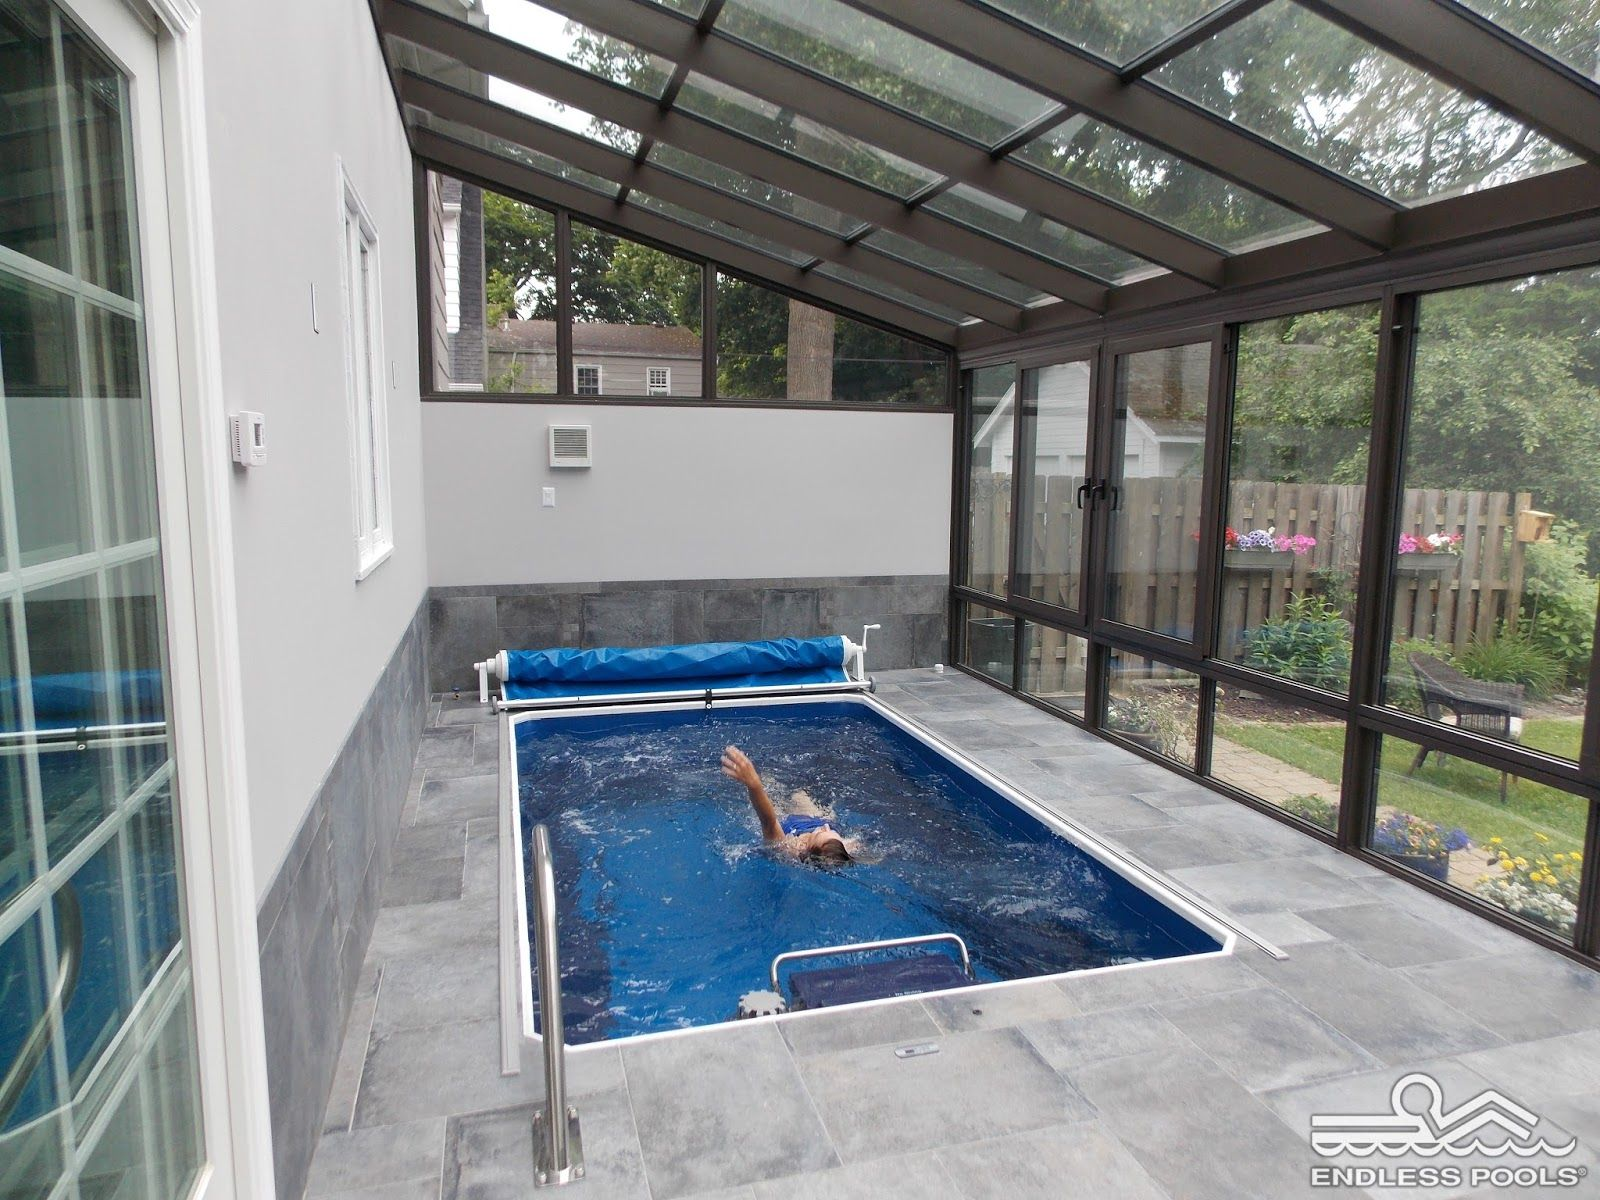 Pool with current to swim against - Pool Enclosures Make An Affordable Option For Year Round Swimming In A Sunroom Environment